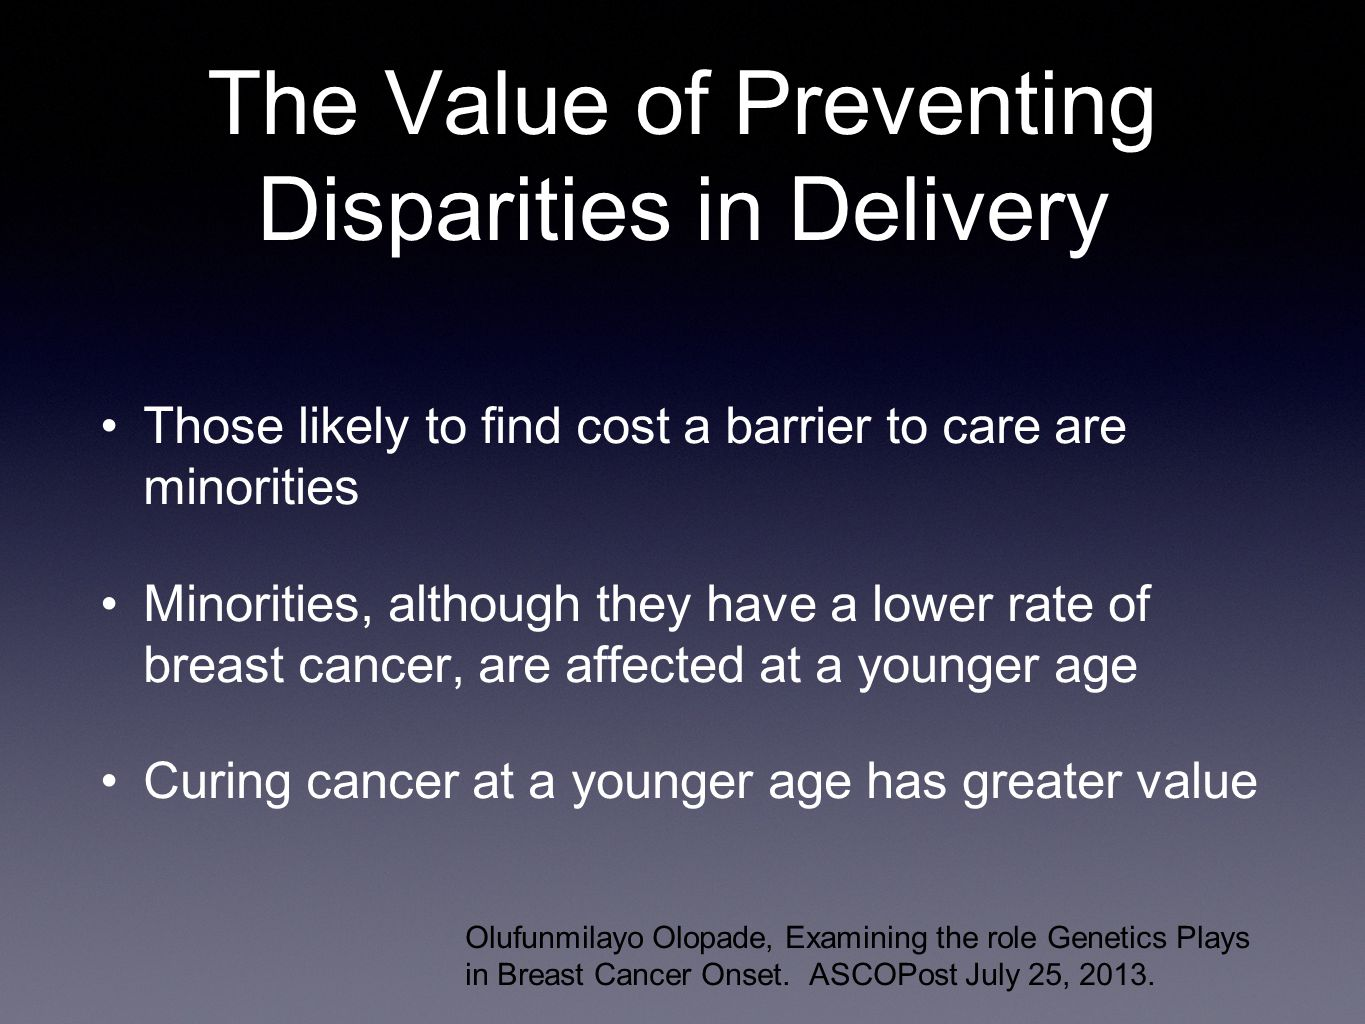 The Value of Preventing Disparities in Delivery Those likely to find cost a barrier to care are minorities Minorities, although they have a lower rate of breast cancer, are affected at a younger age Curing cancer at a younger age has greater value Olufunmilayo Olopade, Examining the role Genetics Plays in Breast Cancer Onset.